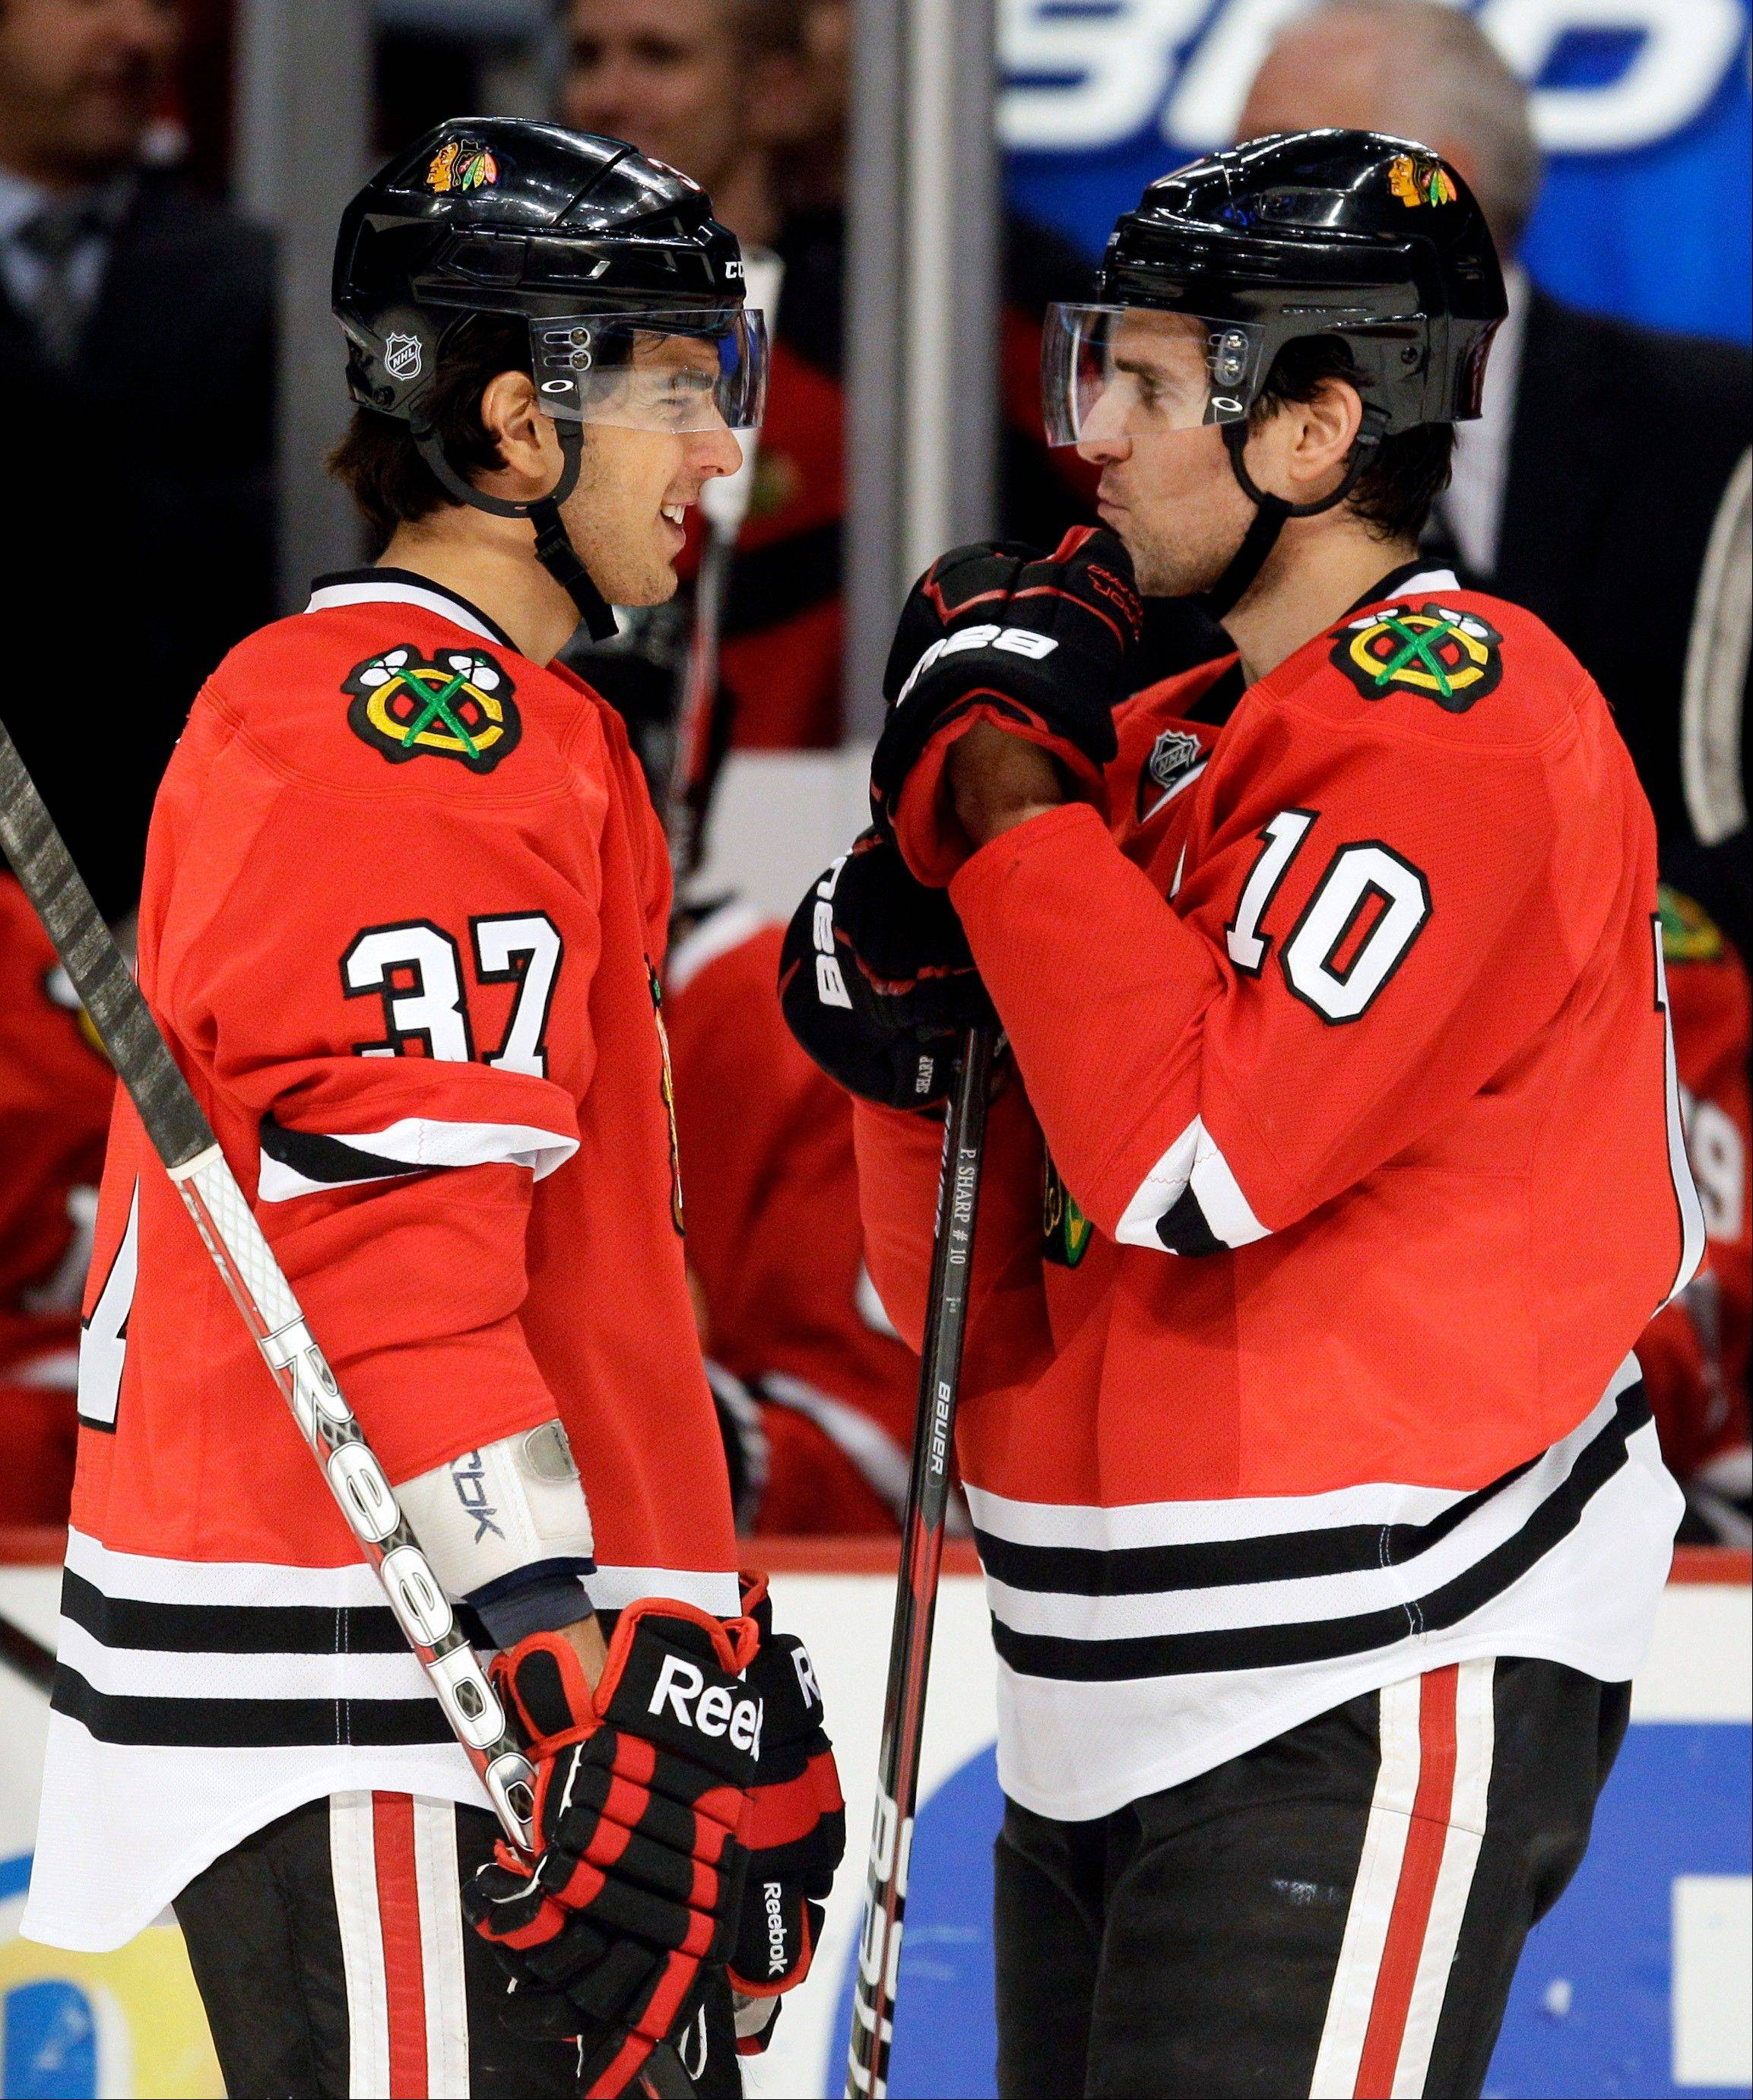 Brandon Pirri (37), led the AHL in scoring last season at Rockford and is expected to compete for the second-line center spot when the Blackhawks and veteran Patrick Sharp (10) open training camp on Thursday in South Bend, Ind.